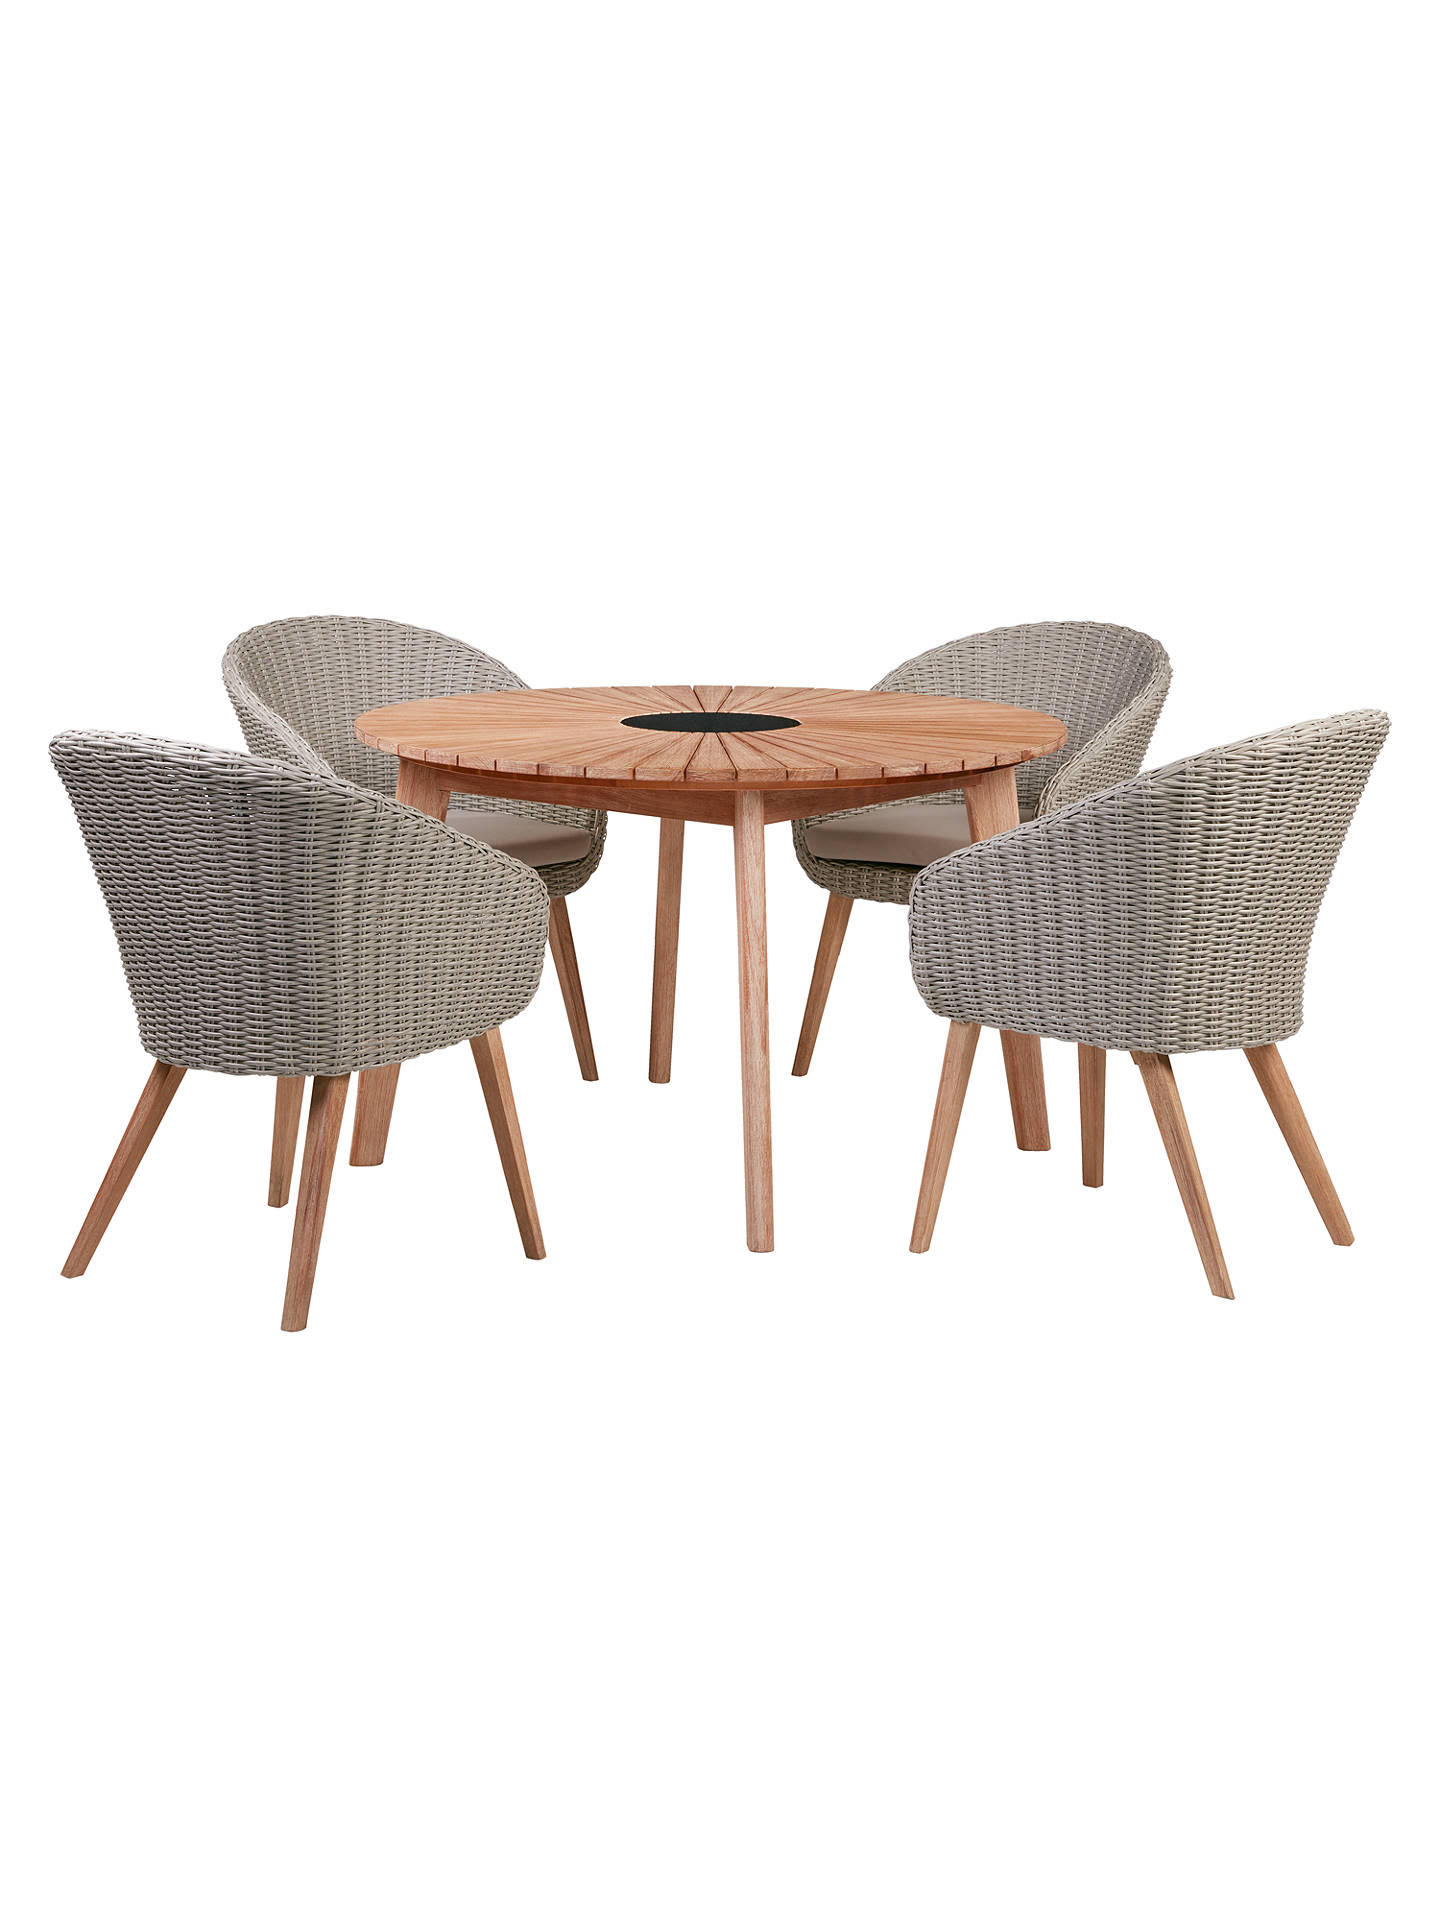 Lot 30340 - V Brand New To John Lewis Sol Four Seater Round Garden Table & Chairs ISP £999 (John Lewis) Stock